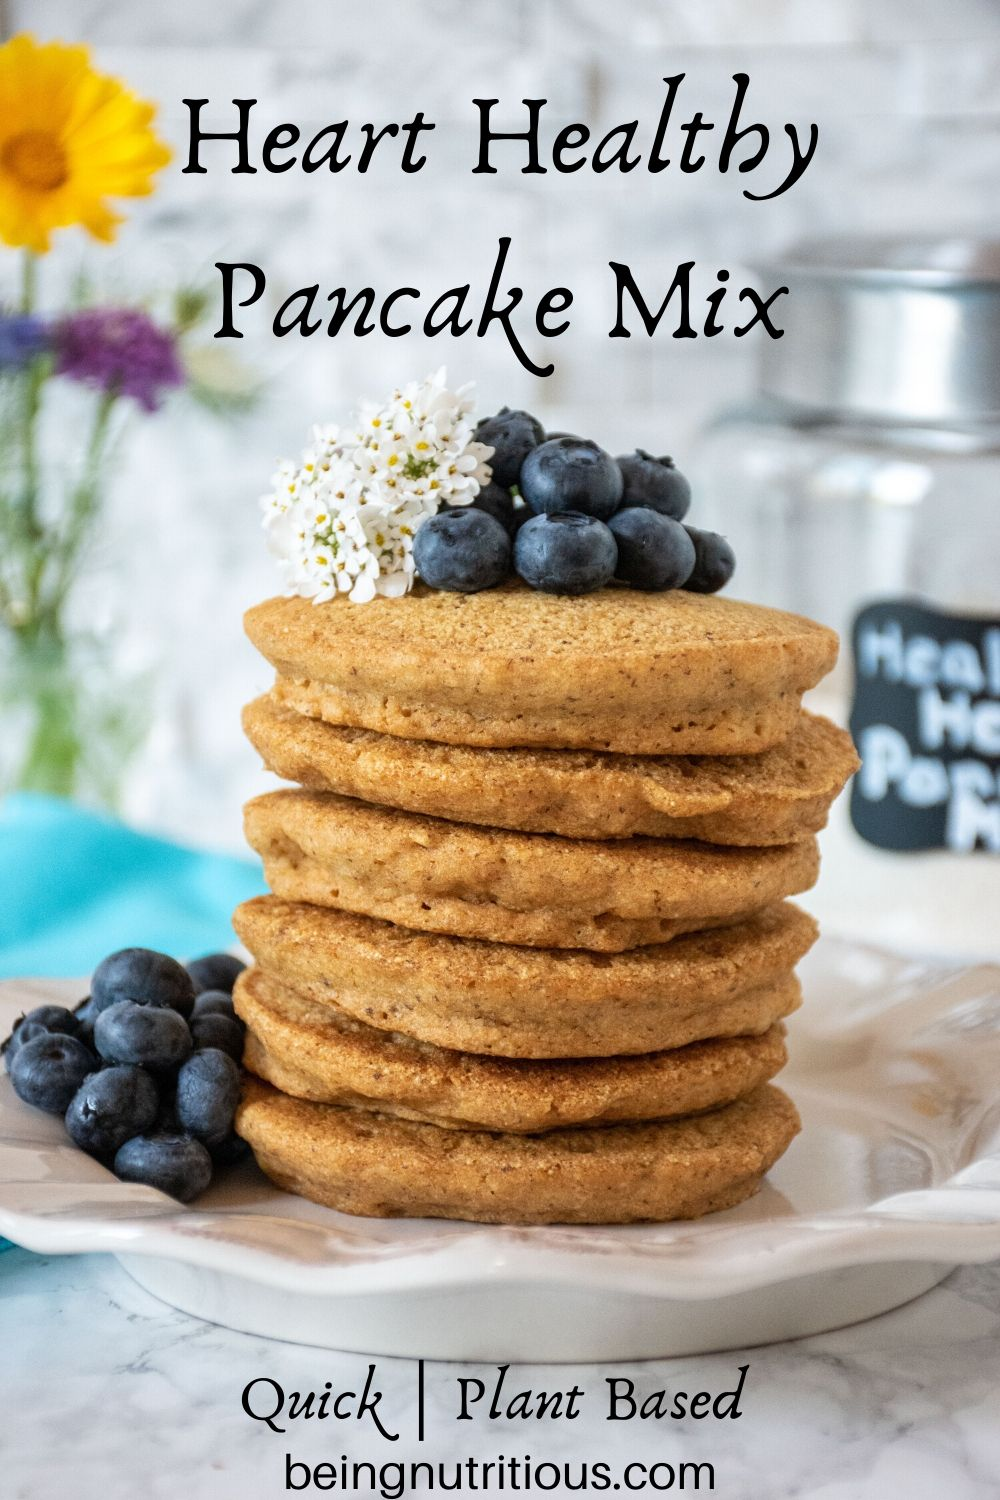 Stack of 6 whole wheat pancakes, with a pile of fresh blueberries and white flowers on top.